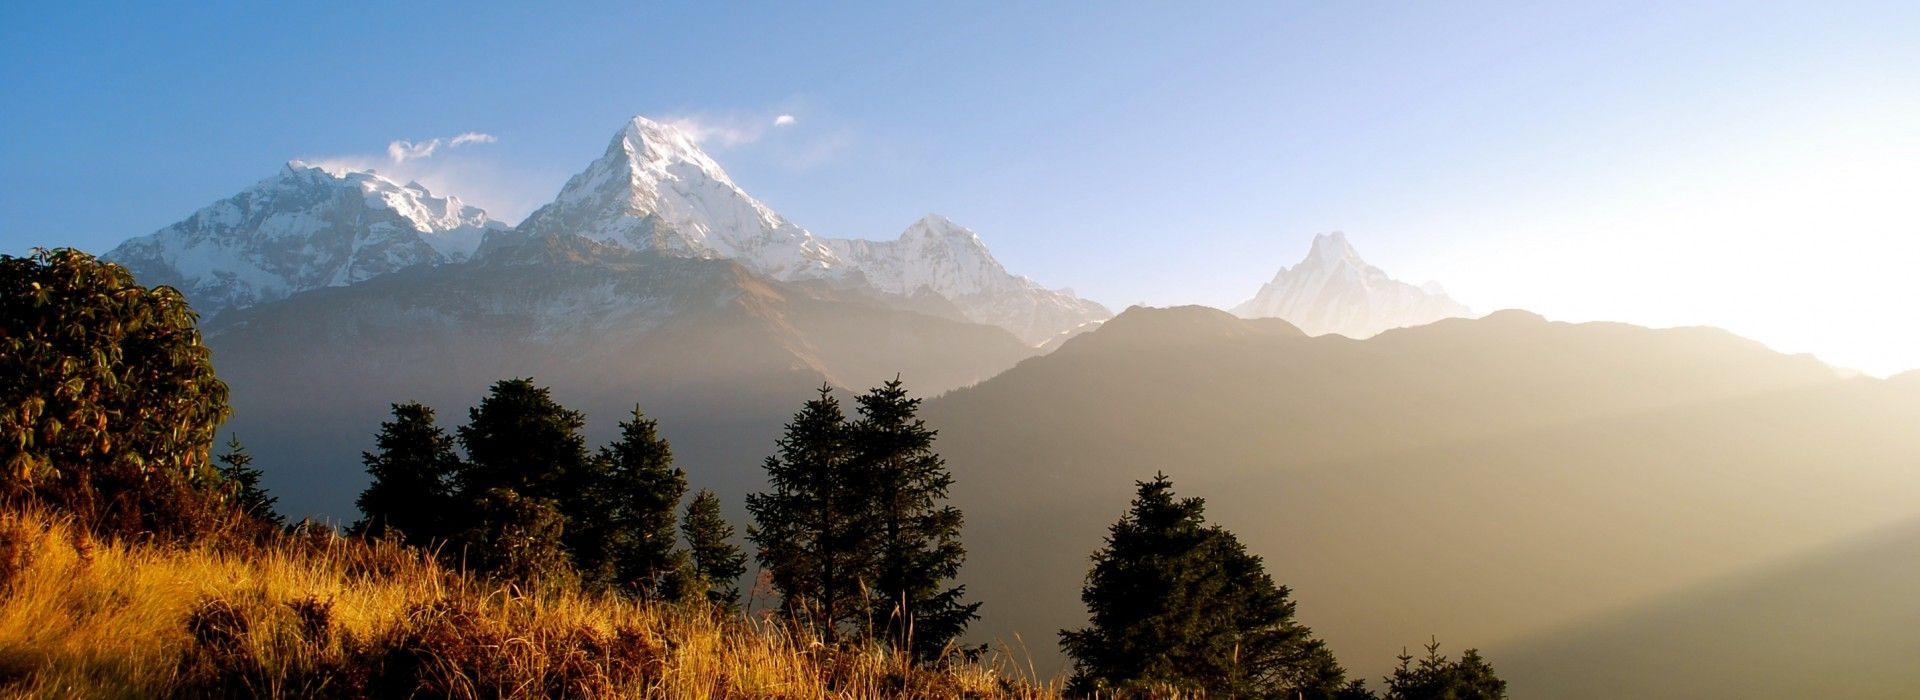 Trekking Tours in Asia